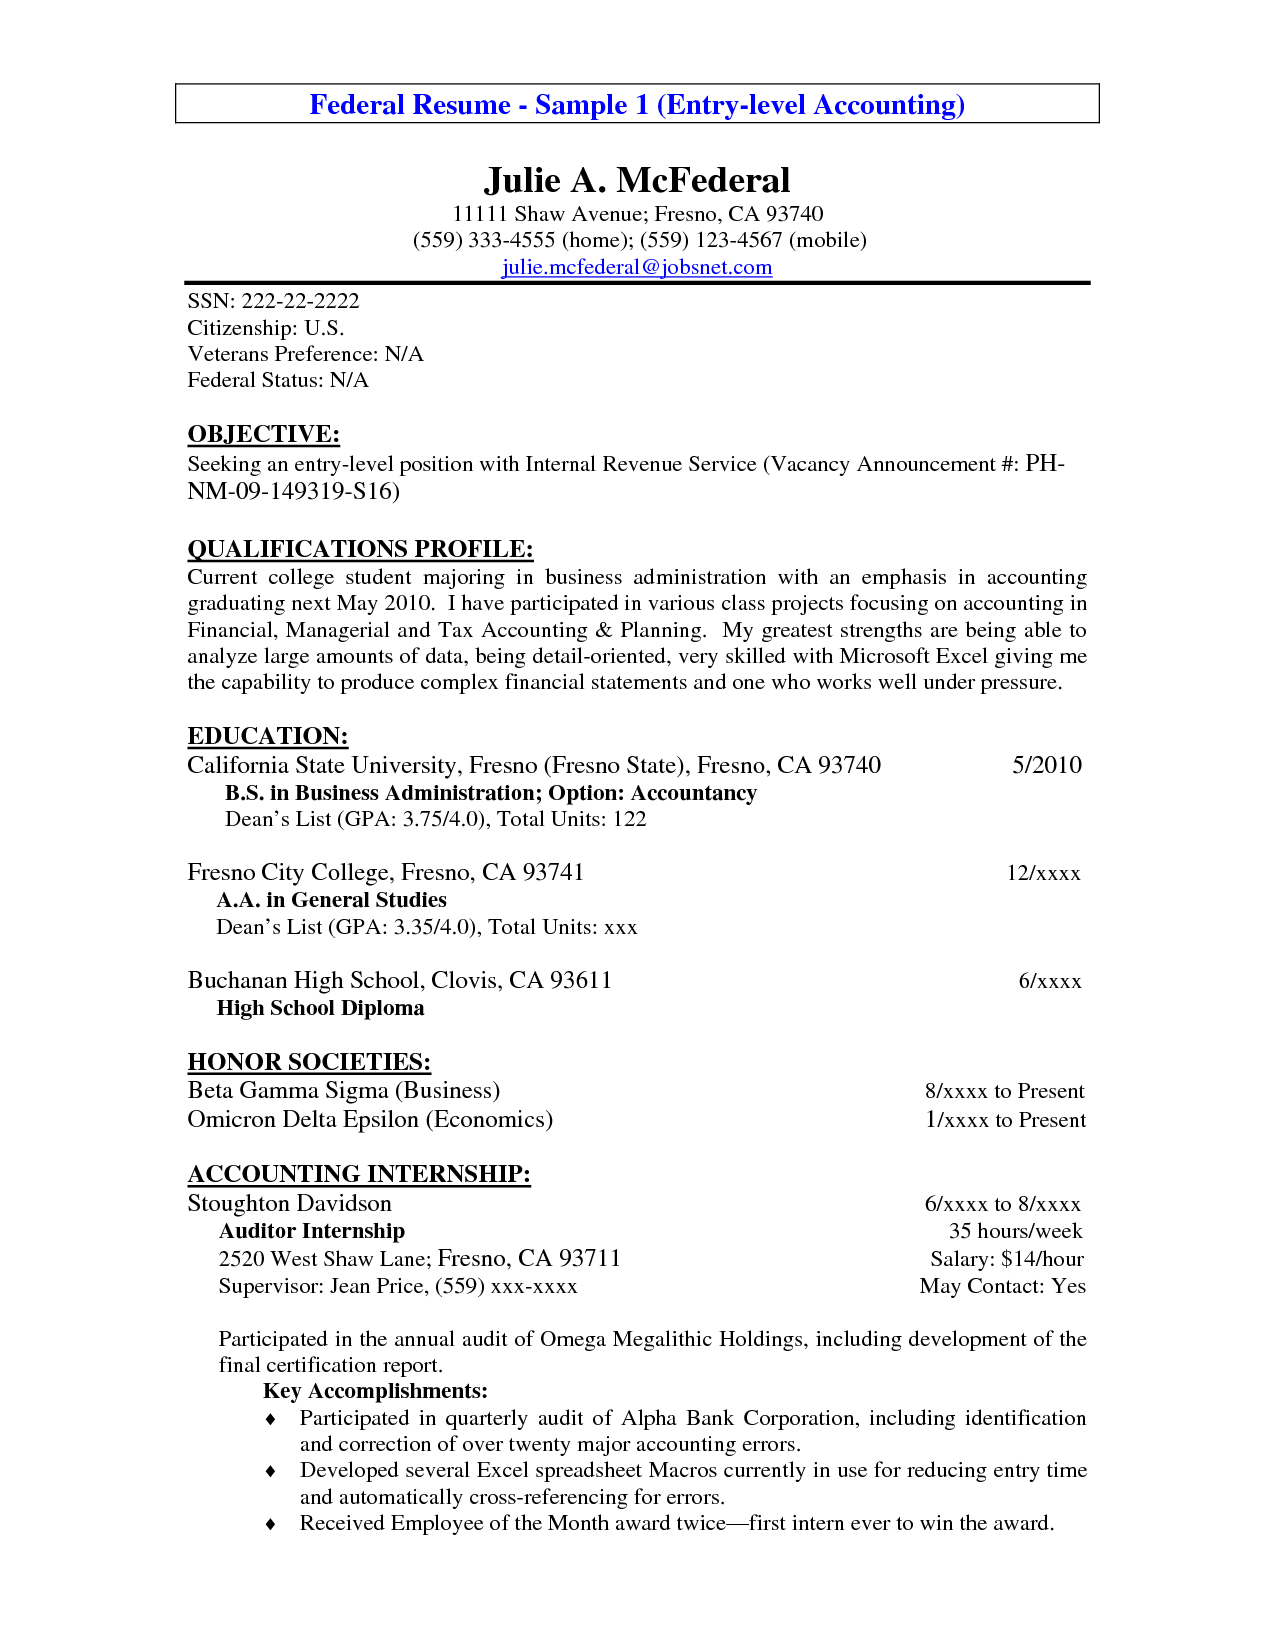 Accounting resume objectives read more httpwww accounting resume objectives read more httpsampleresumeobjectives altavistaventures